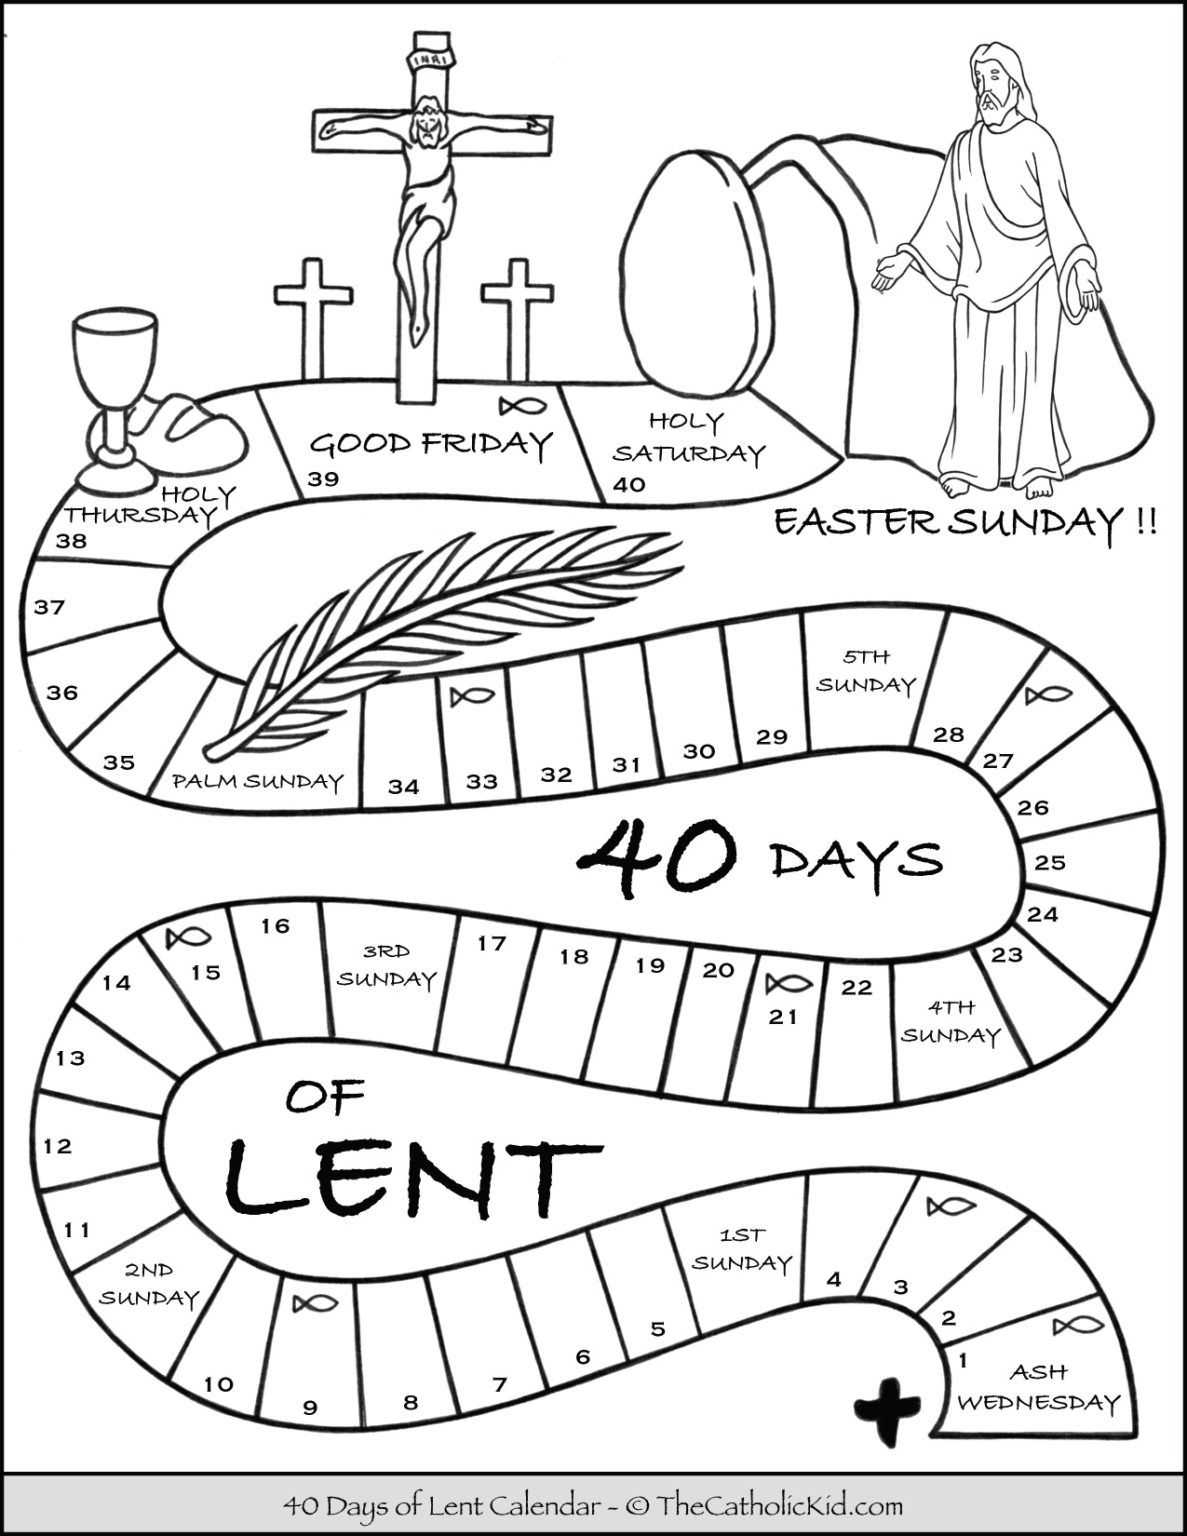 hight resolution of palm sunday Archives - The Catholic Kid - Catholic Coloring Pages and Games  for Children   Catholic coloring